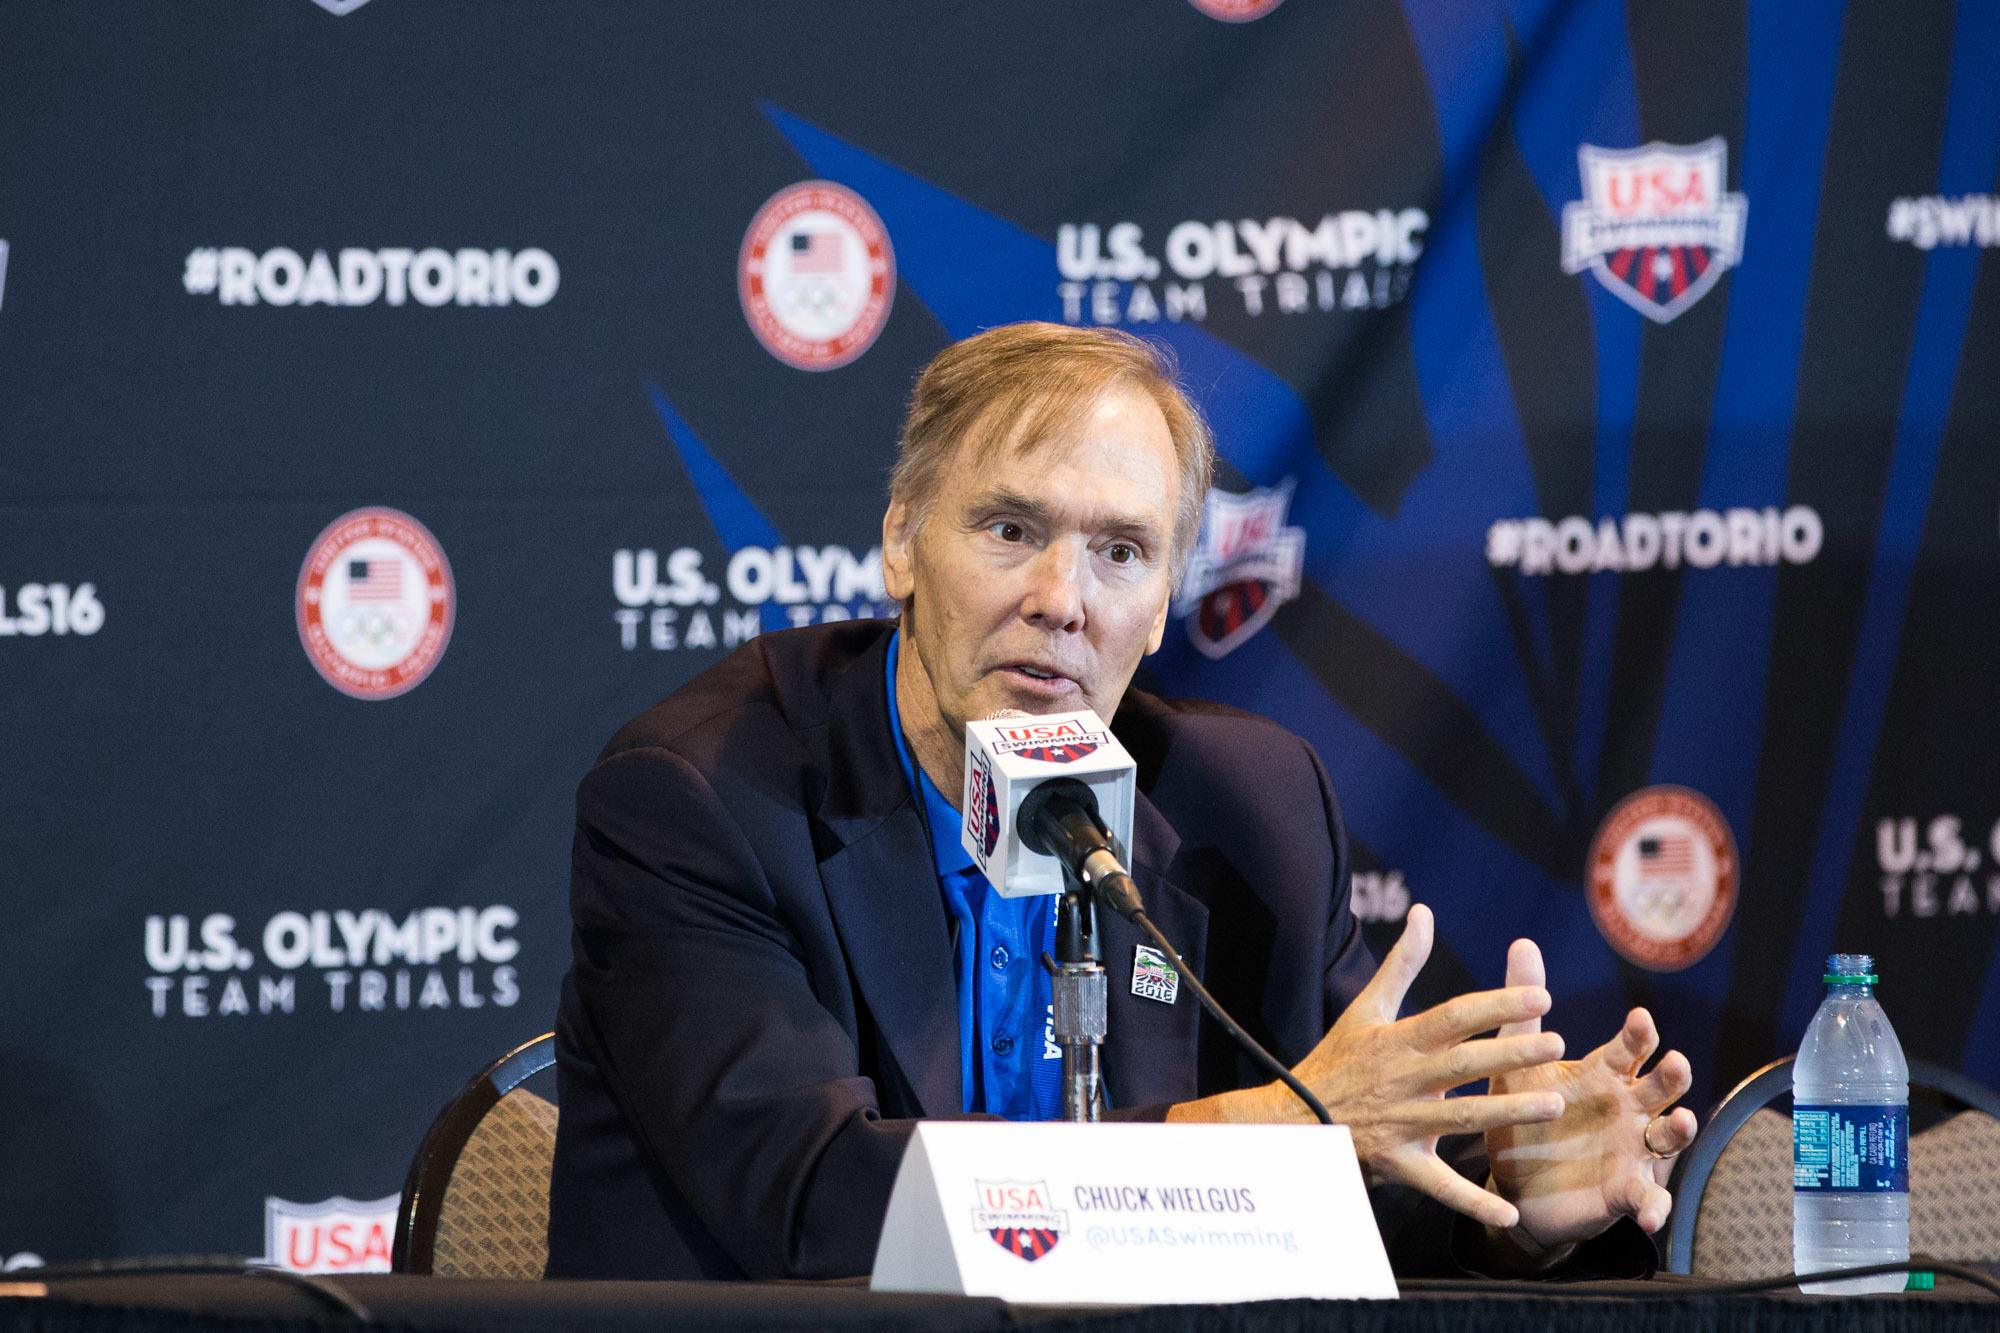 USA Swimming CEO Chuck Wielgus Dies at 67